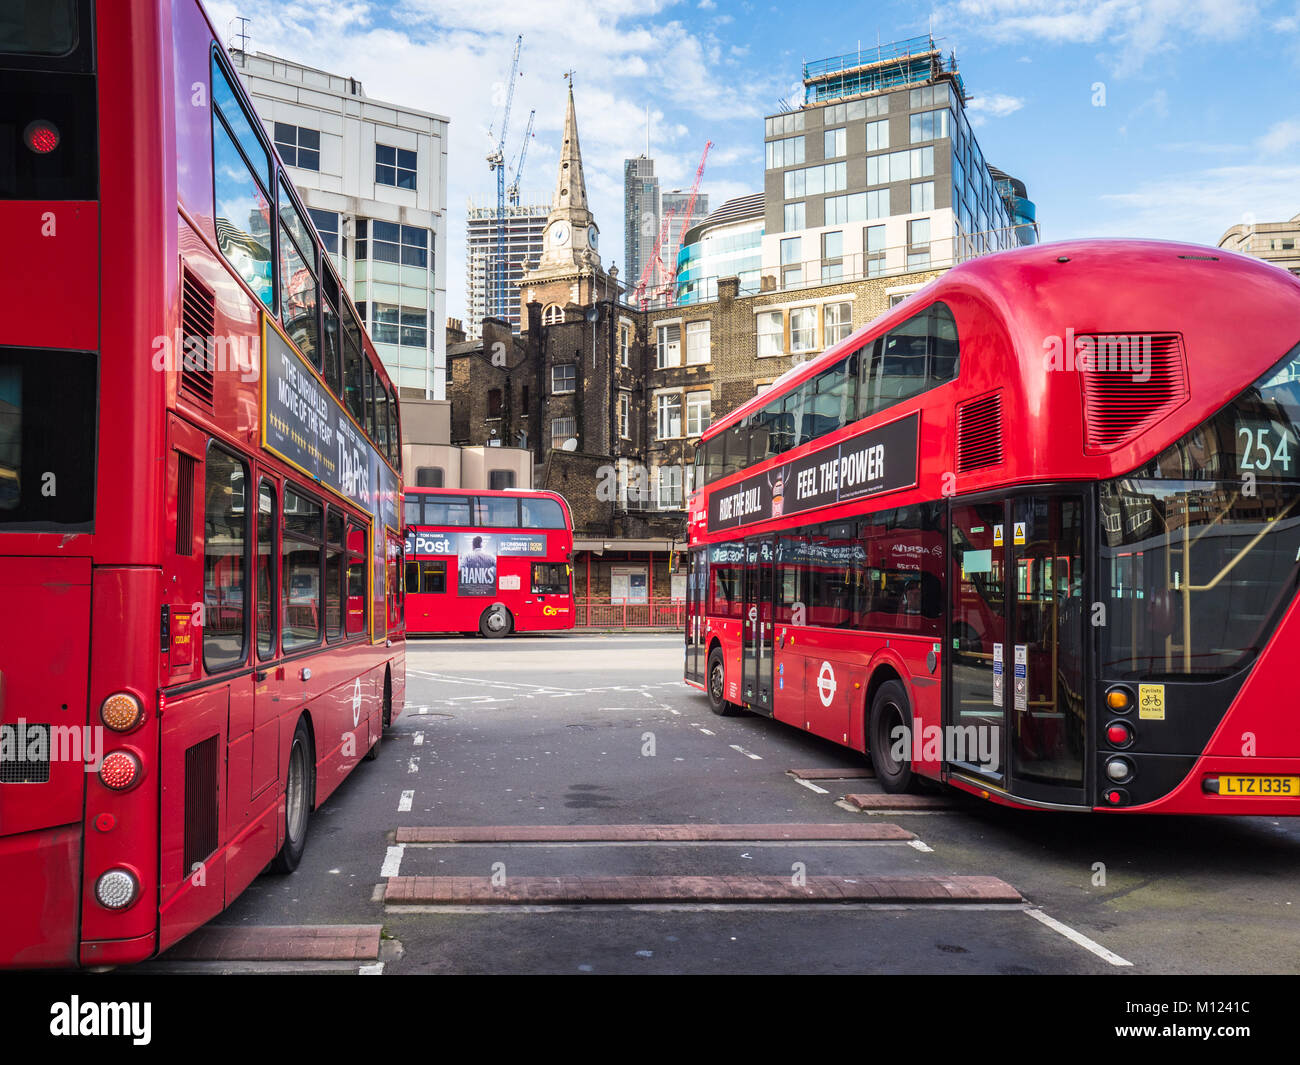 Aldgate Bus Station in the City of London Financial District, UK, owned and maintained by Transport for London TfL - Stock Image